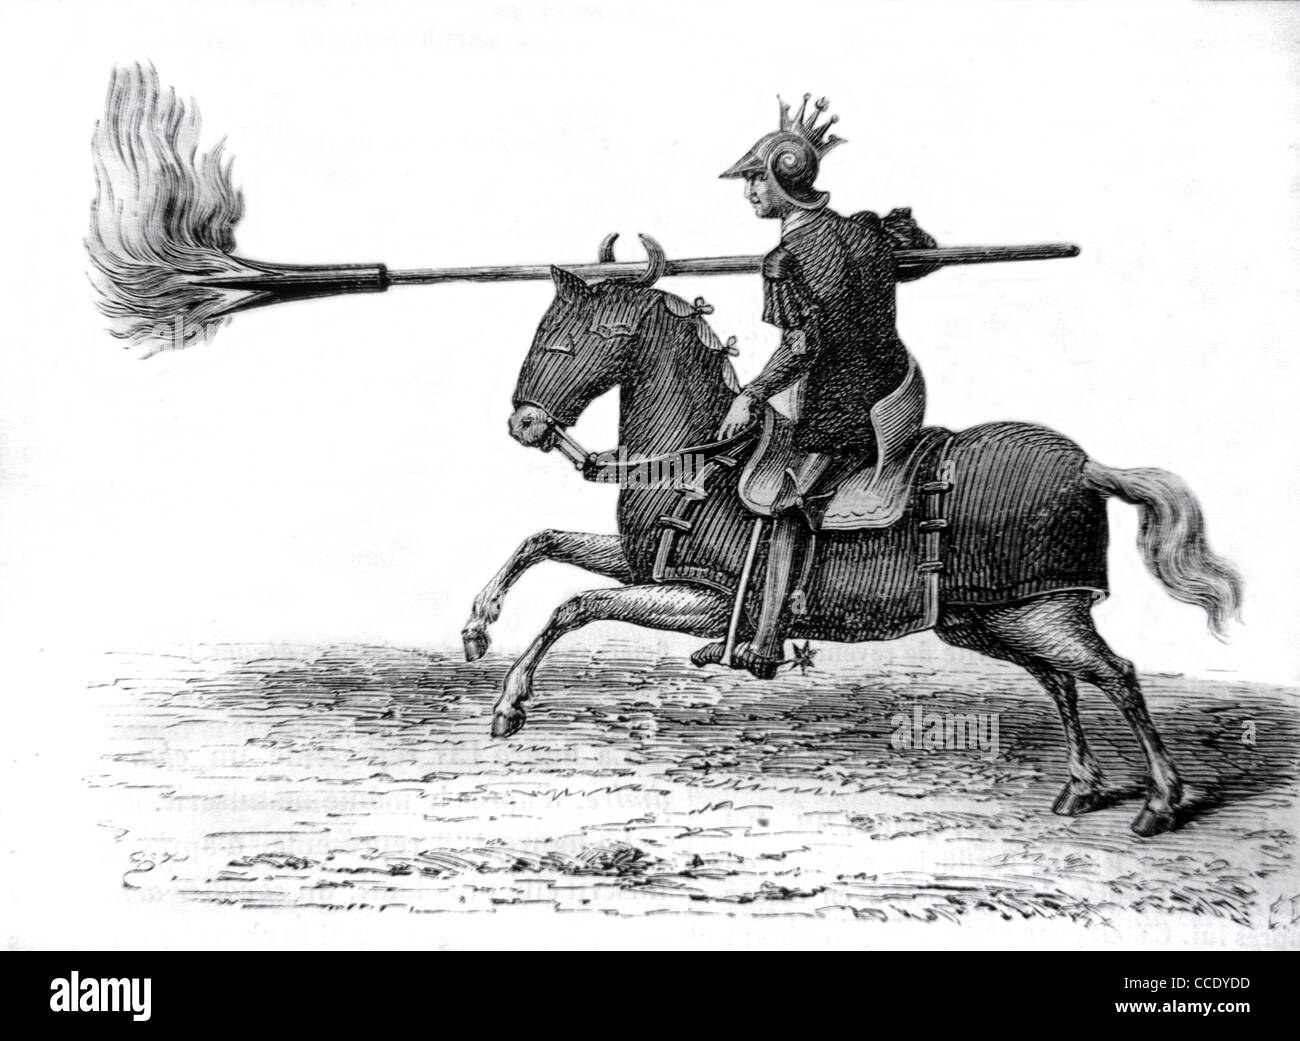 Medieval Knight, Cavalry, Horseman or Mounted Soldier with Flaming Lance or Spear, c19th Engraving - Stock Image